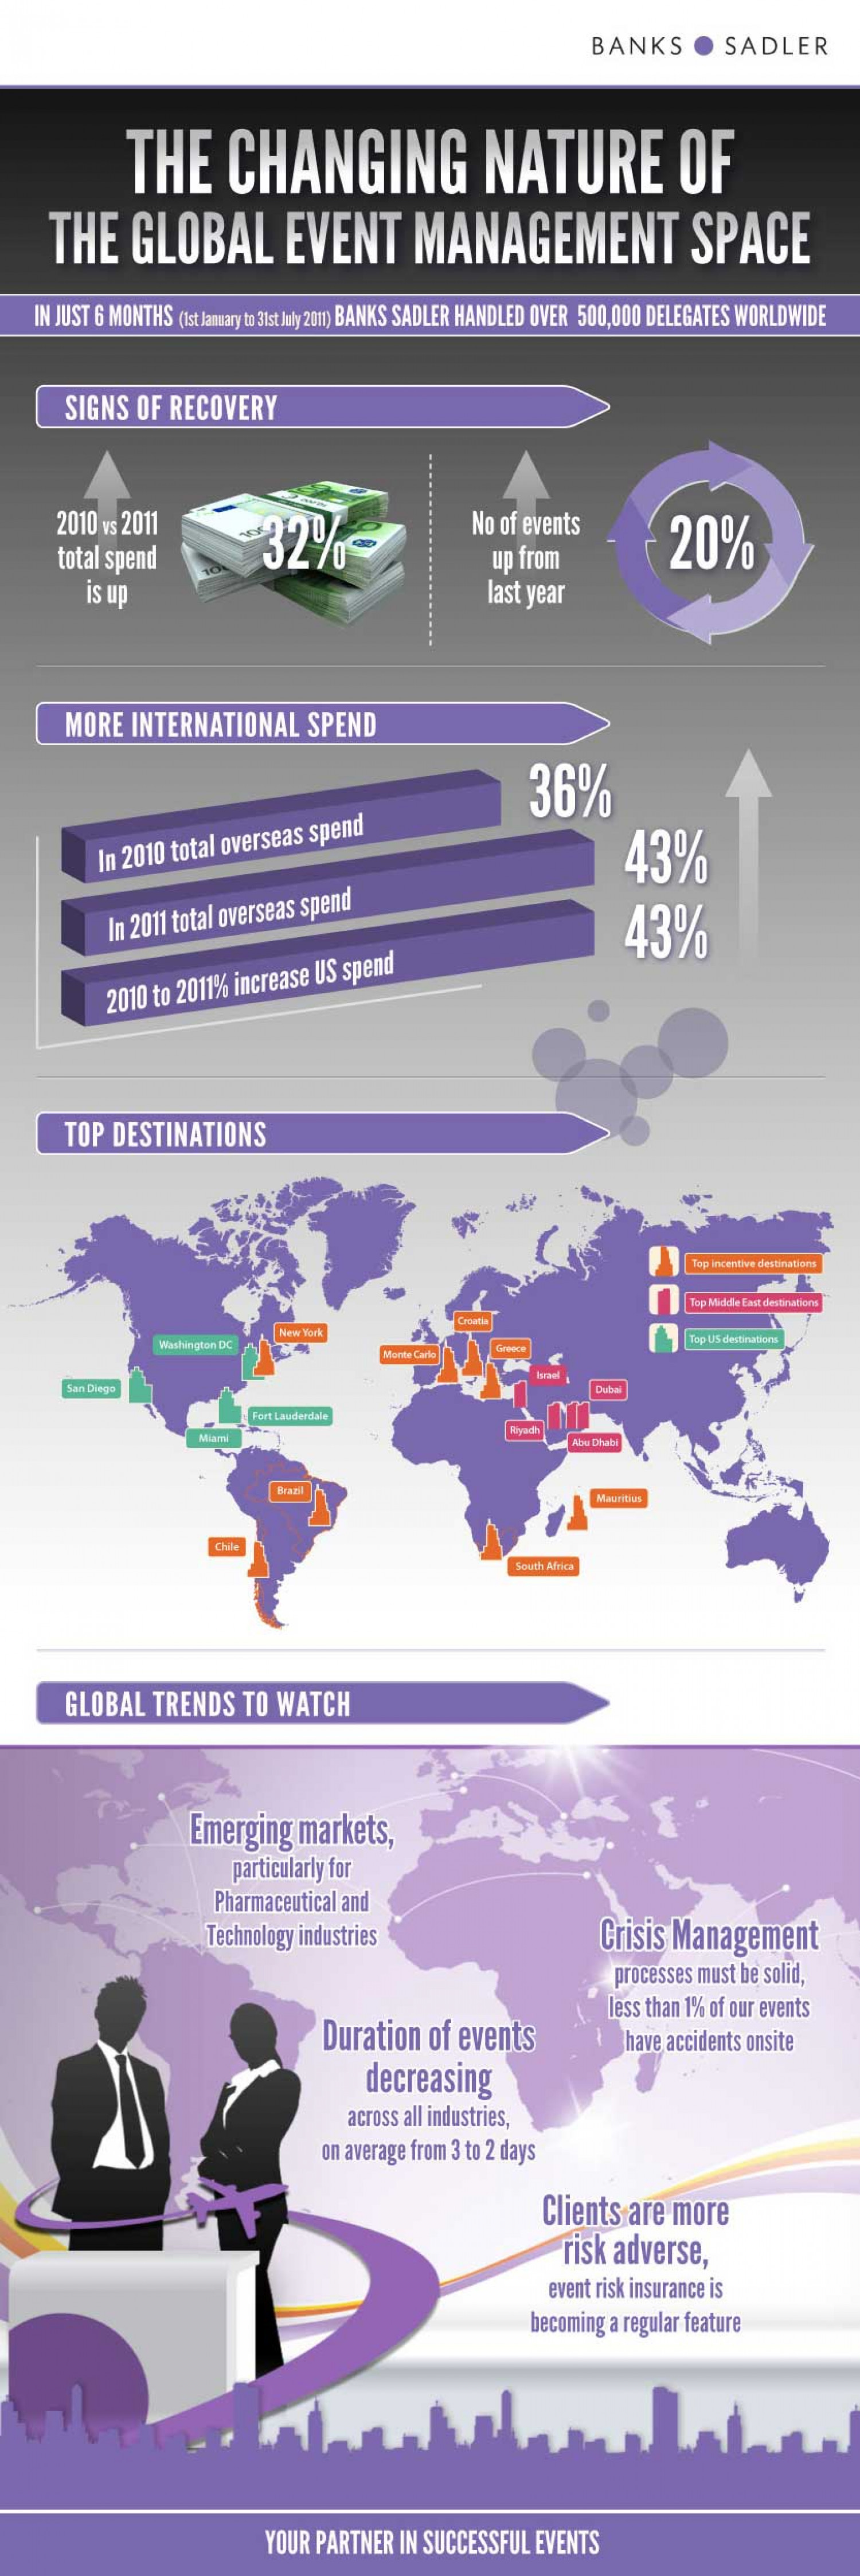 The Changing Nature of the Global Event Management Space Infographic